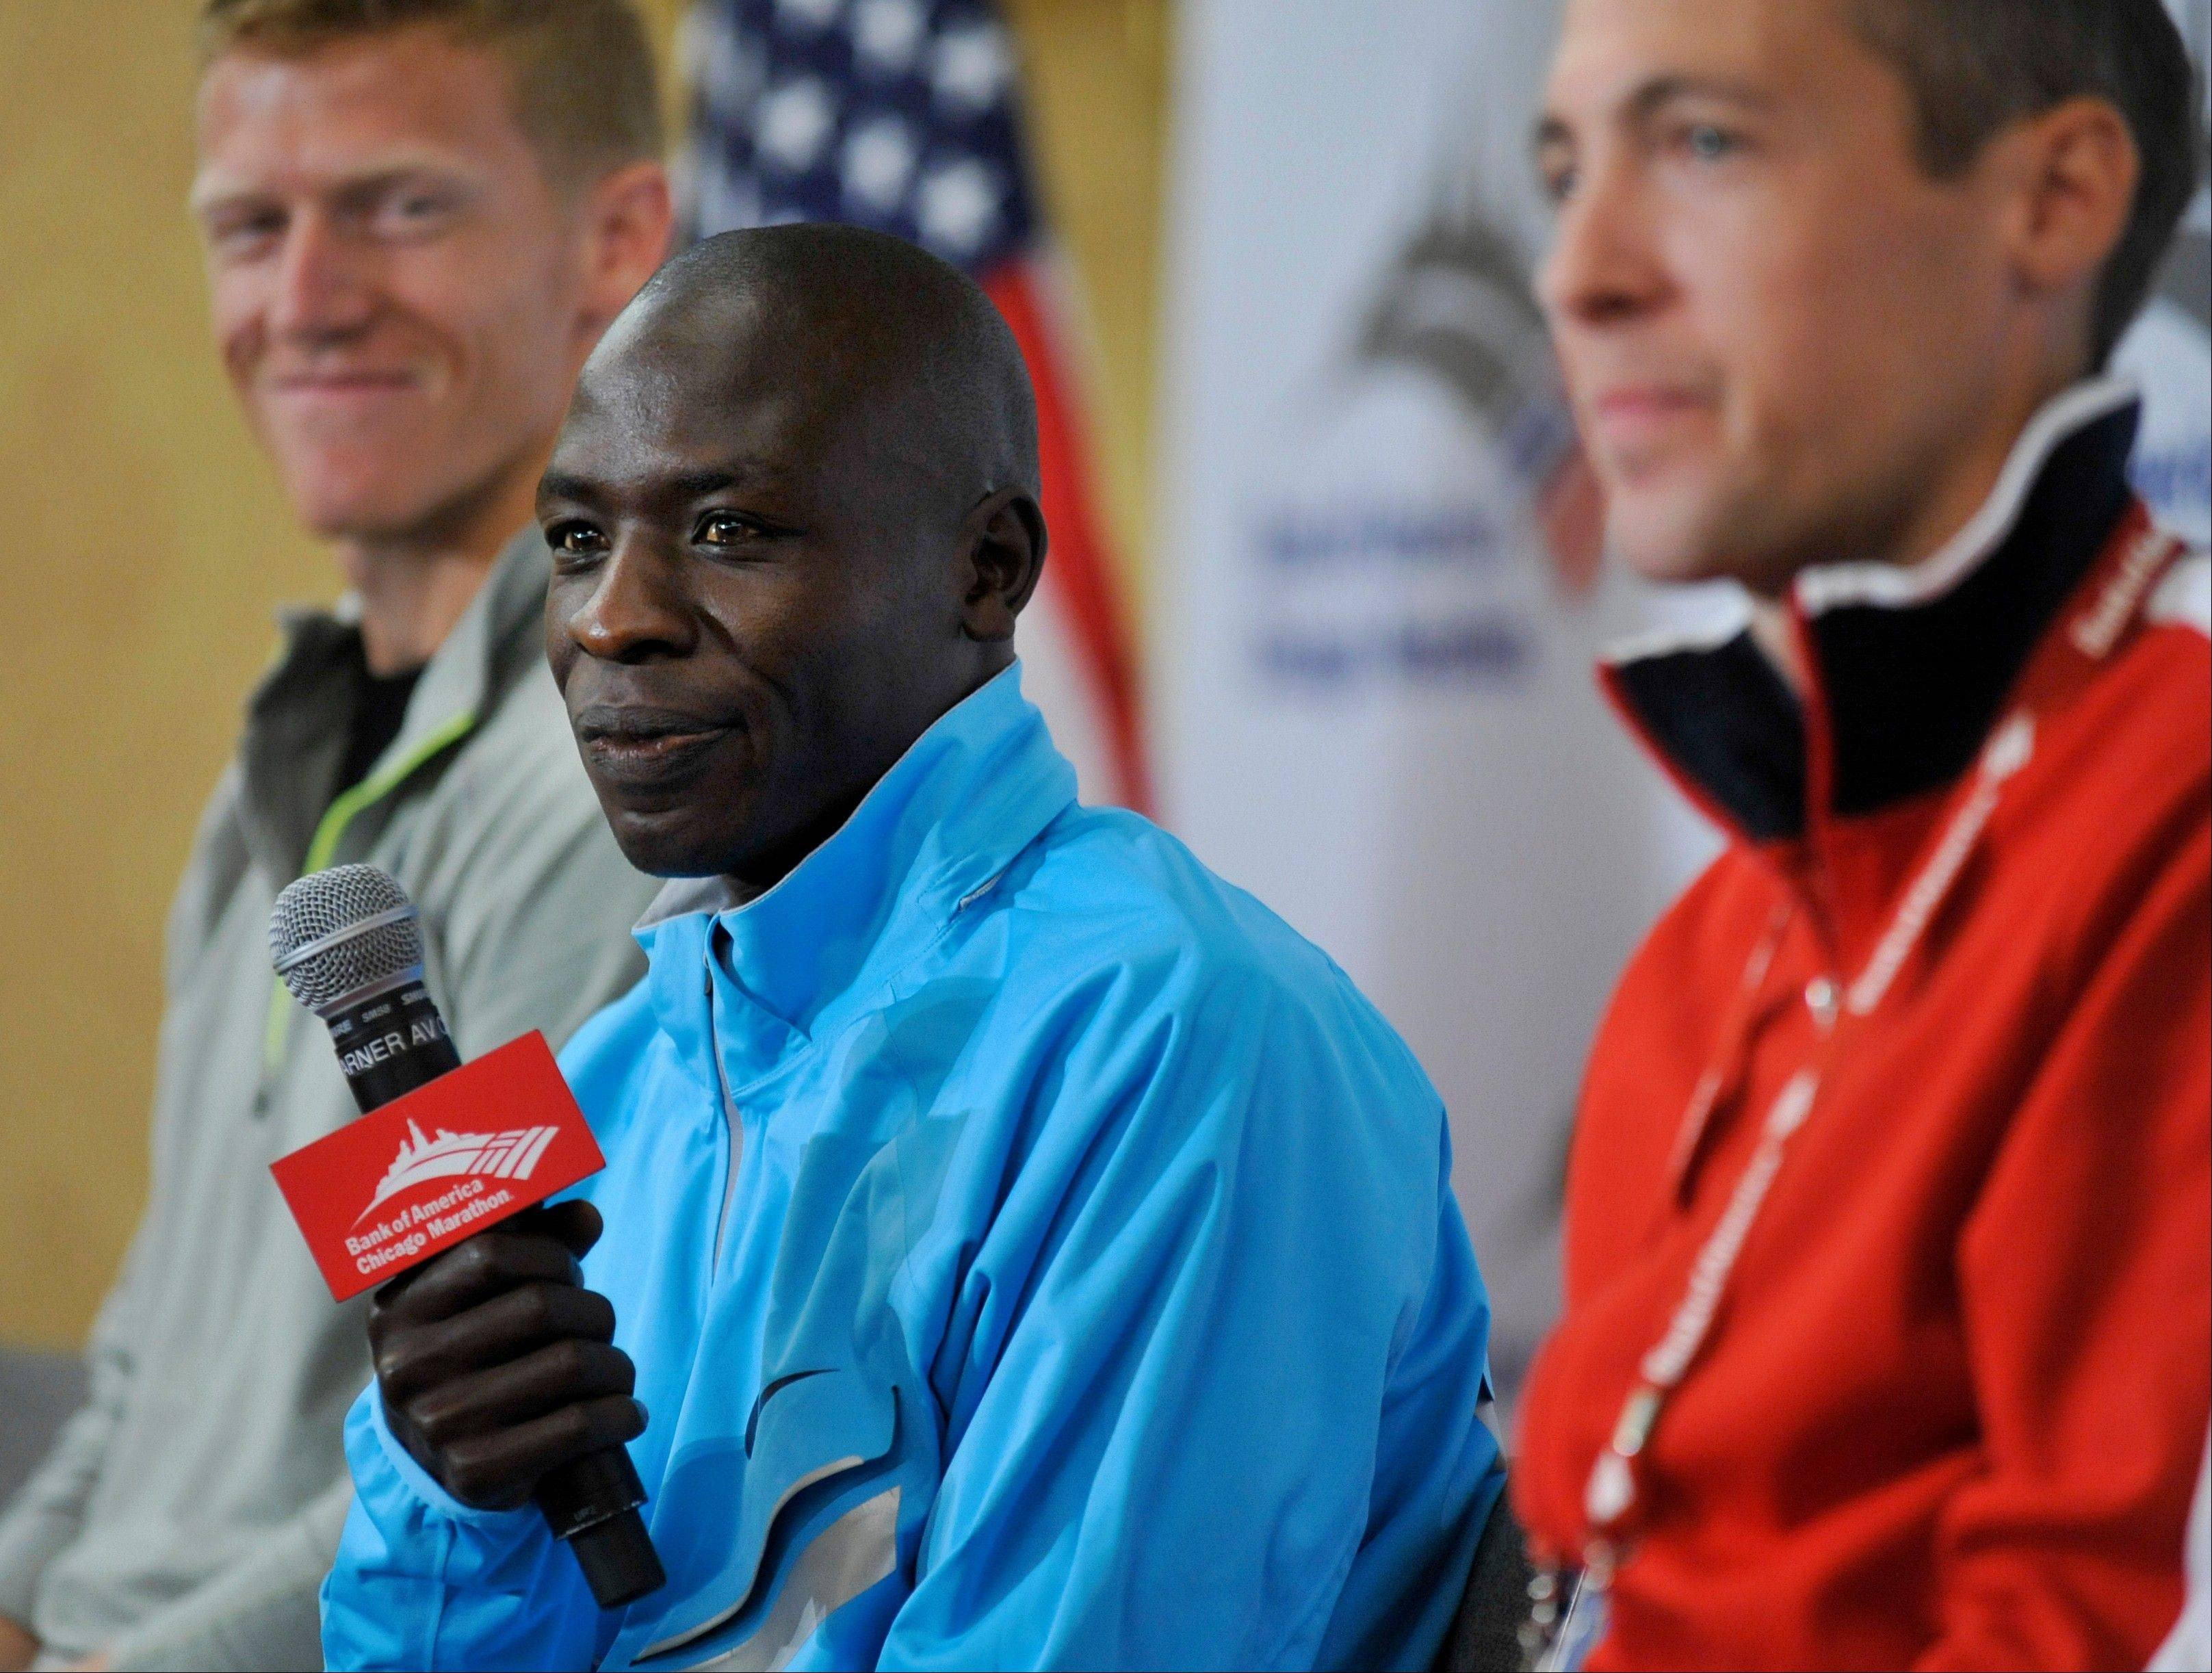 The 2011 Chicago Marathon winner, Kenya's Moses Mosop, center, didn't race in last year's event, but he has his sights set on the course record for Sunday's race.